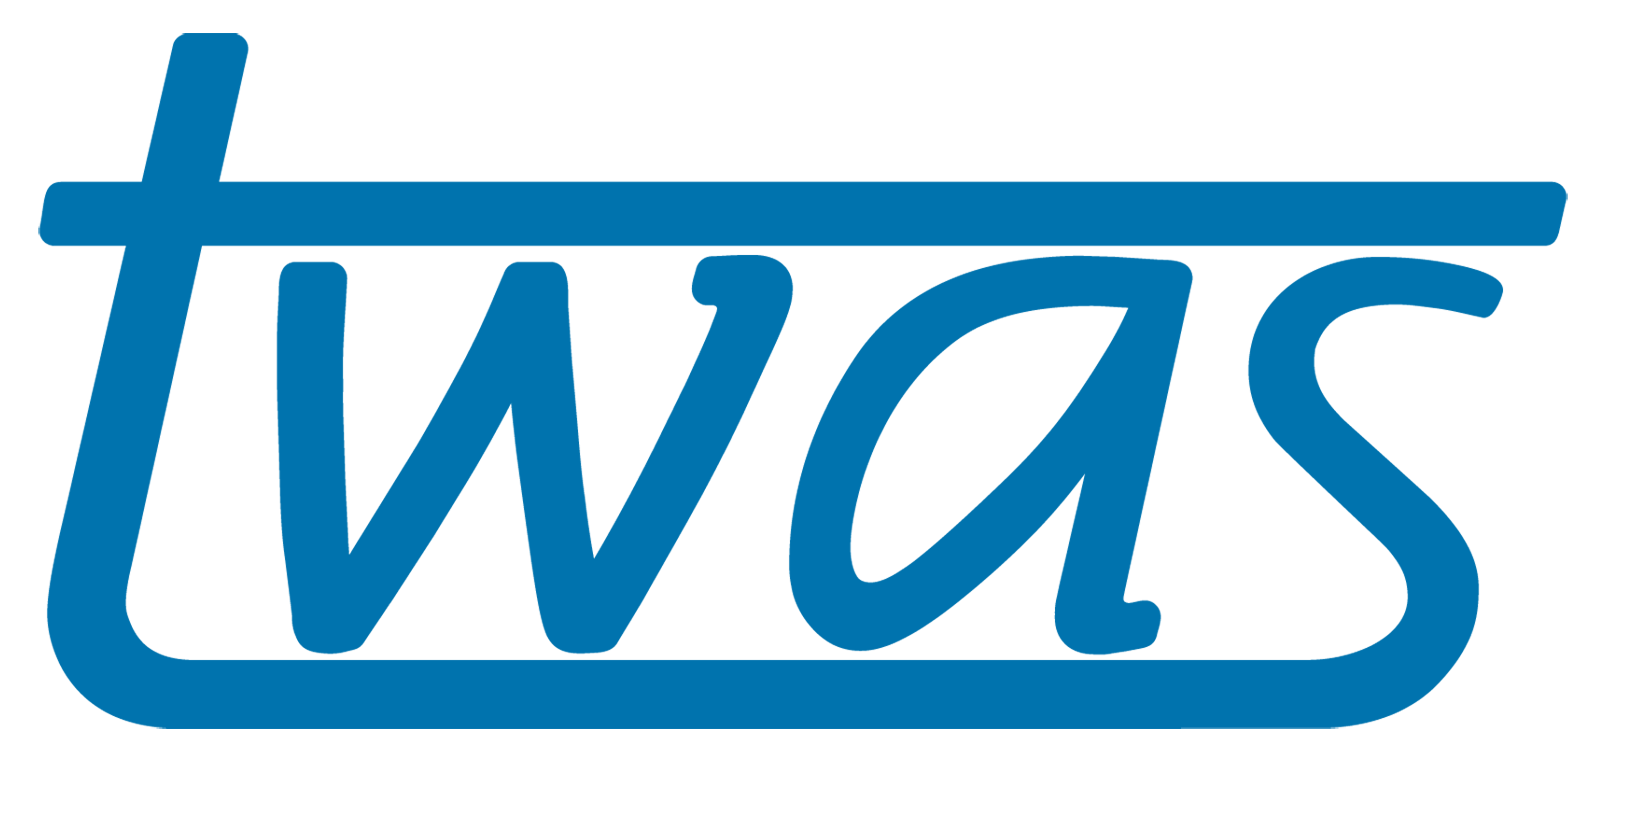 TWAS-DFG Cooperation Visits Programme 2018 for Post-Doctoral Researchers (Funded)